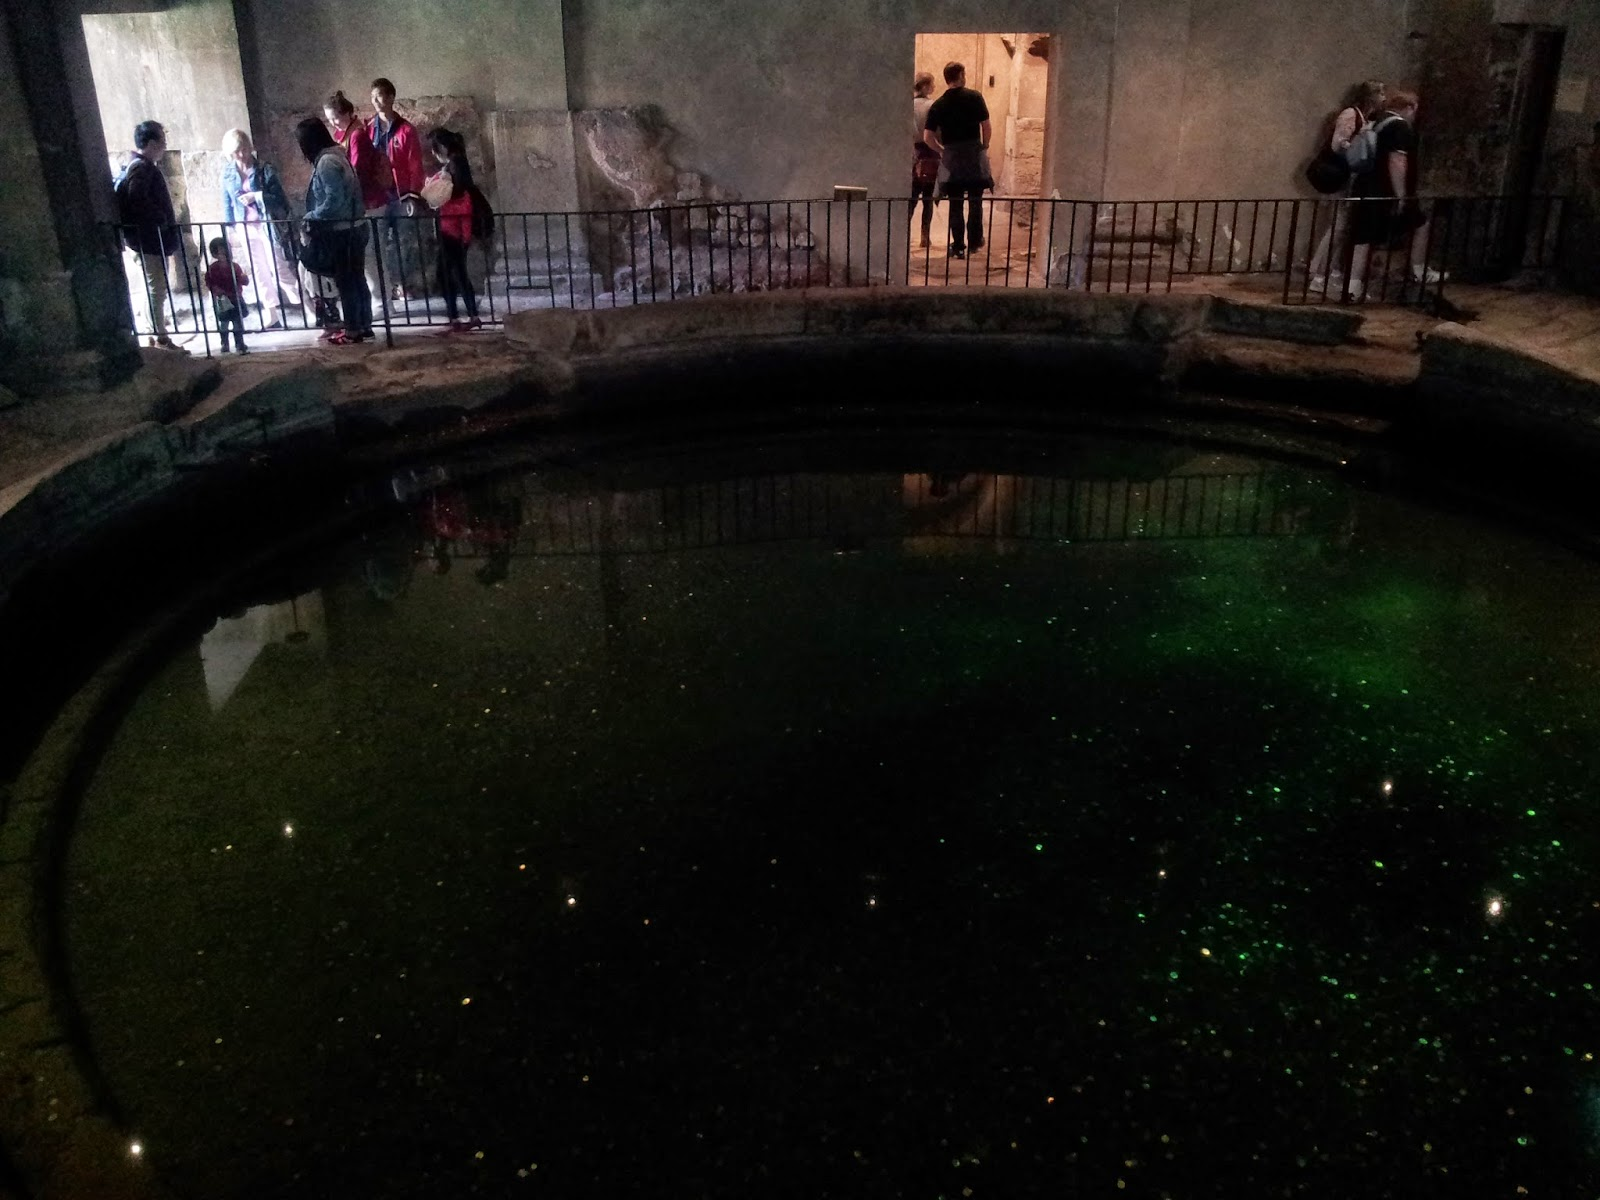 Pool inside Roman baths